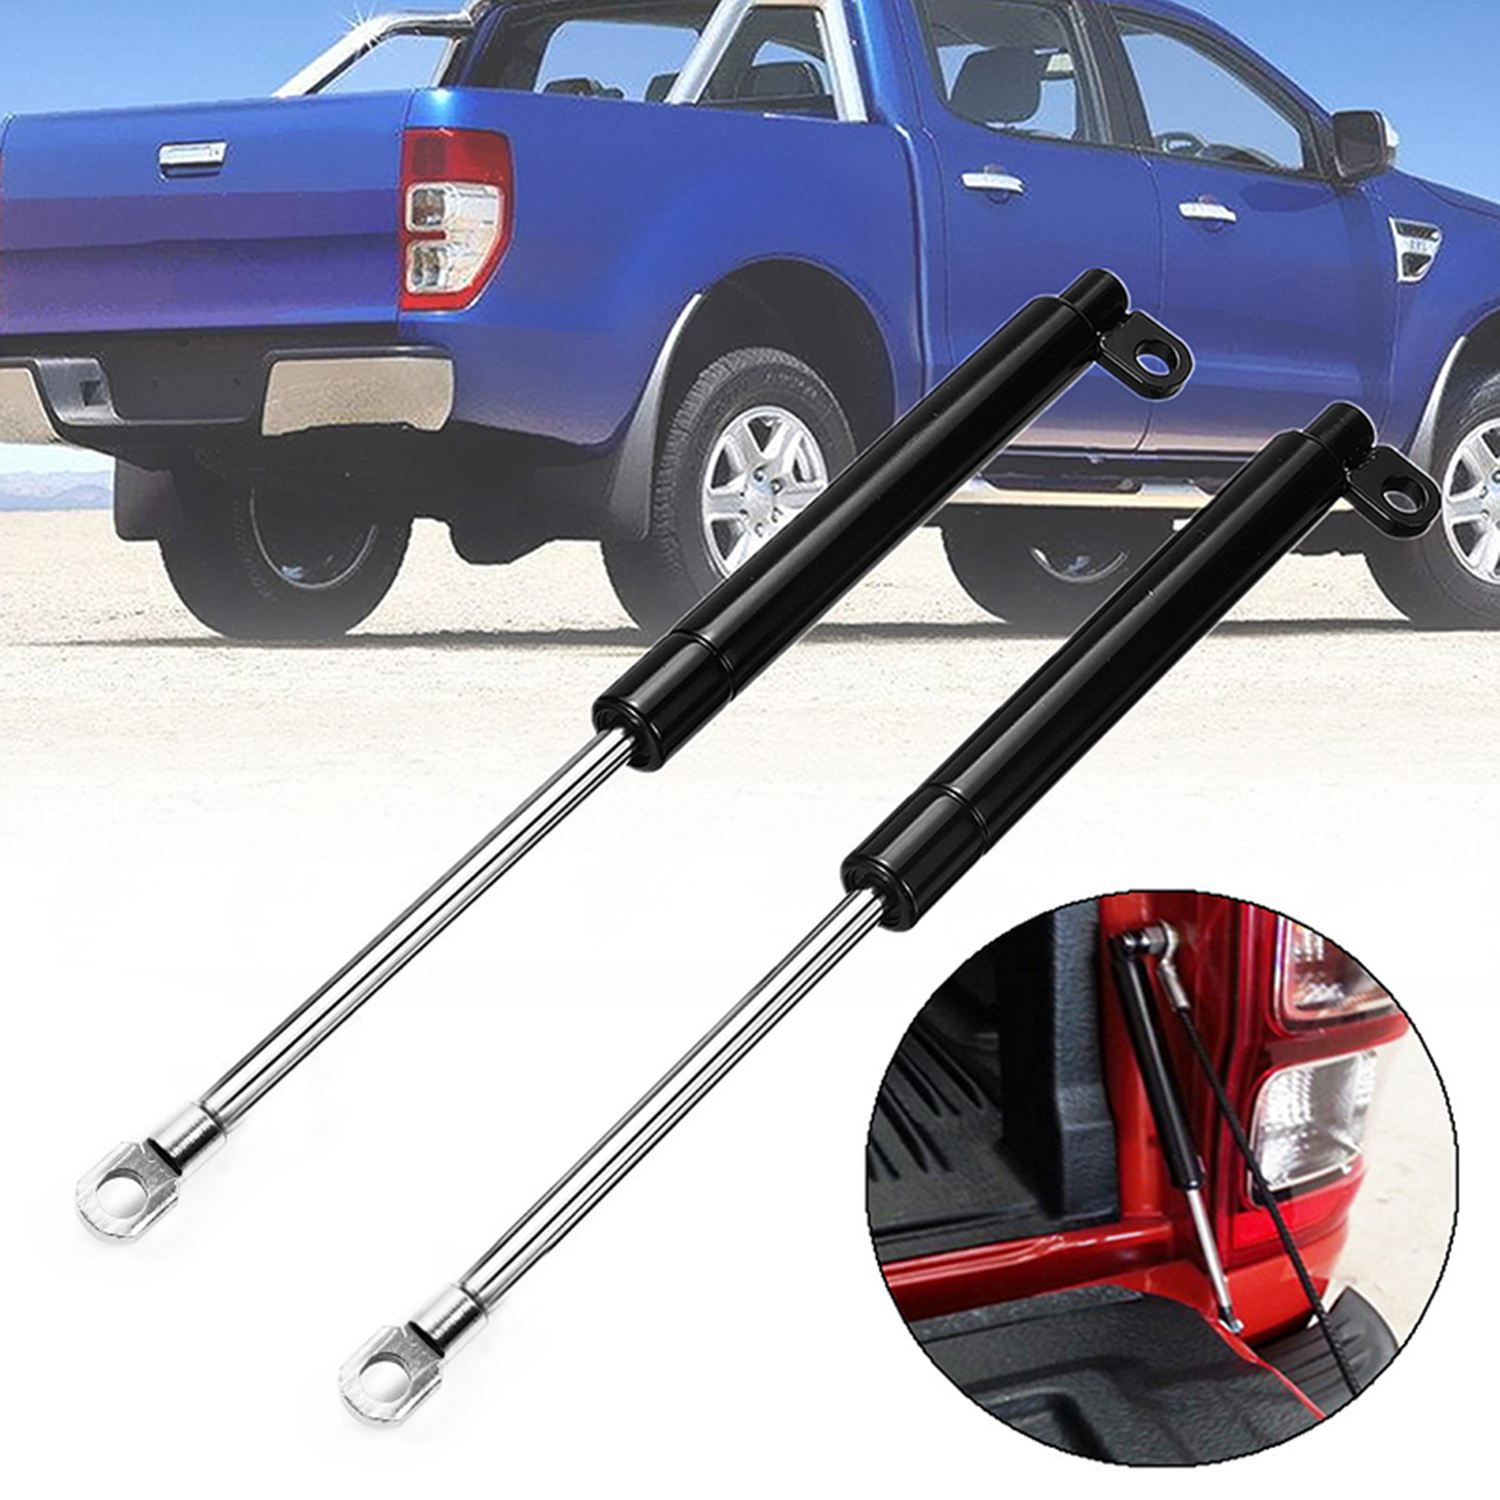 2X Rear Tail Gate Slow Down & Easy Up Lift Strut Kit Tailgates & Liftgates Car Accessories Parts For Ford PX RANGER TAIL GATE